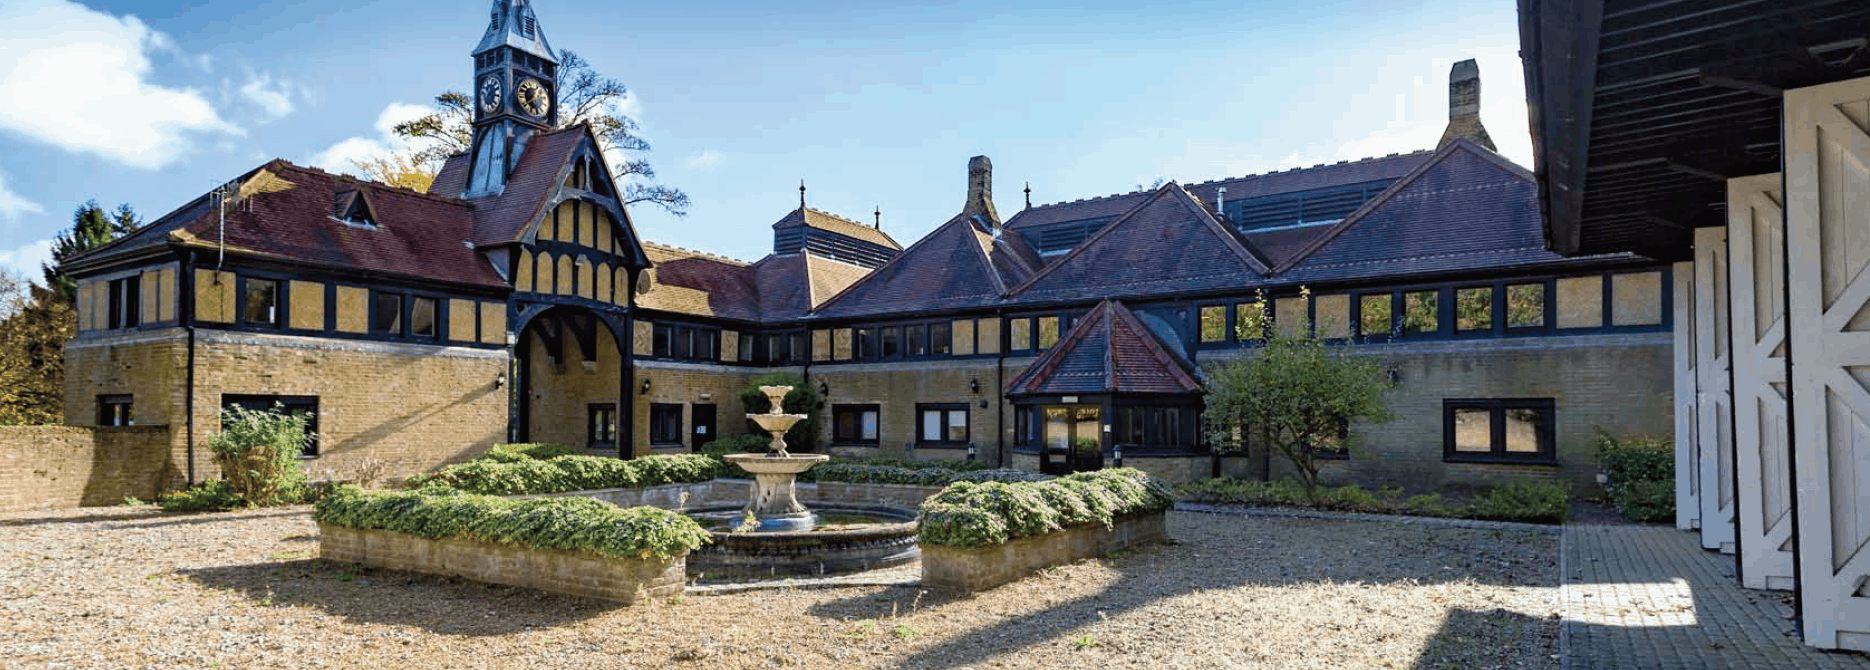 Patteson Mew Period Building in Redhill Surrey : Court Ocea Commercial to Residential Property Development